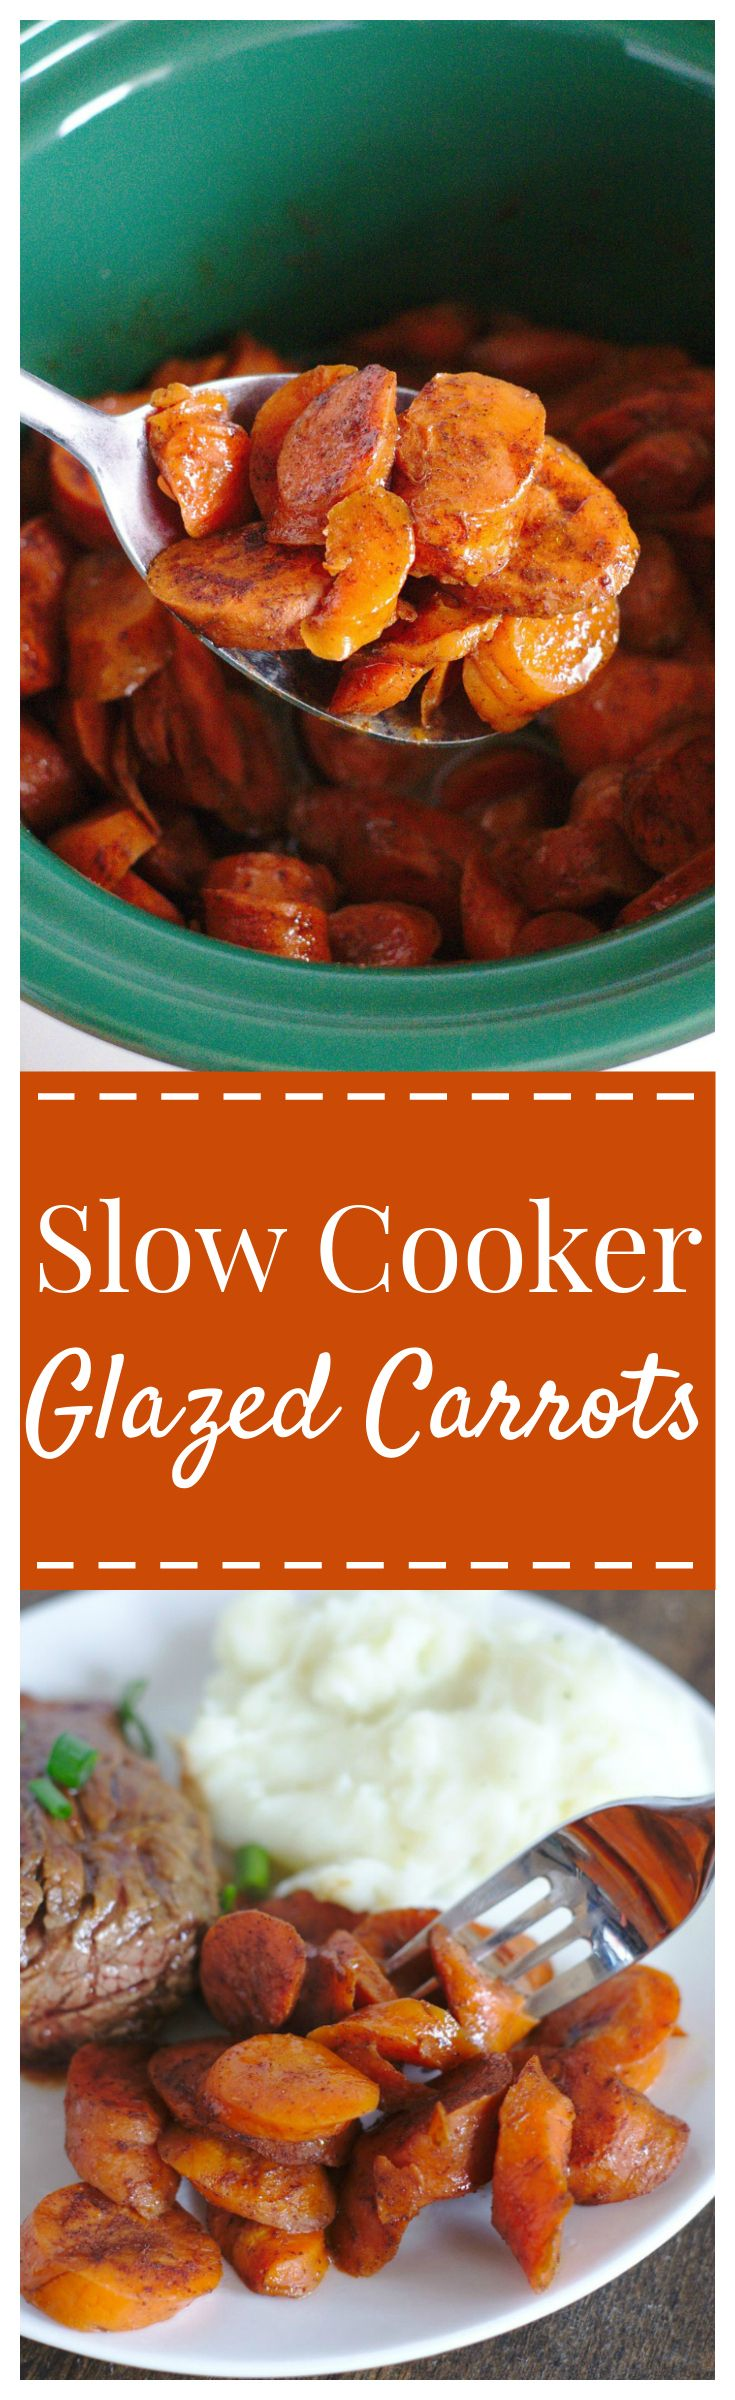 2 lbs carrots (either chopped carrots or baby carrots) 1/2 cup brown sugar 2 tbsp butter (melted) 2 tsp cinnamon 1/2 tsp ground ginger